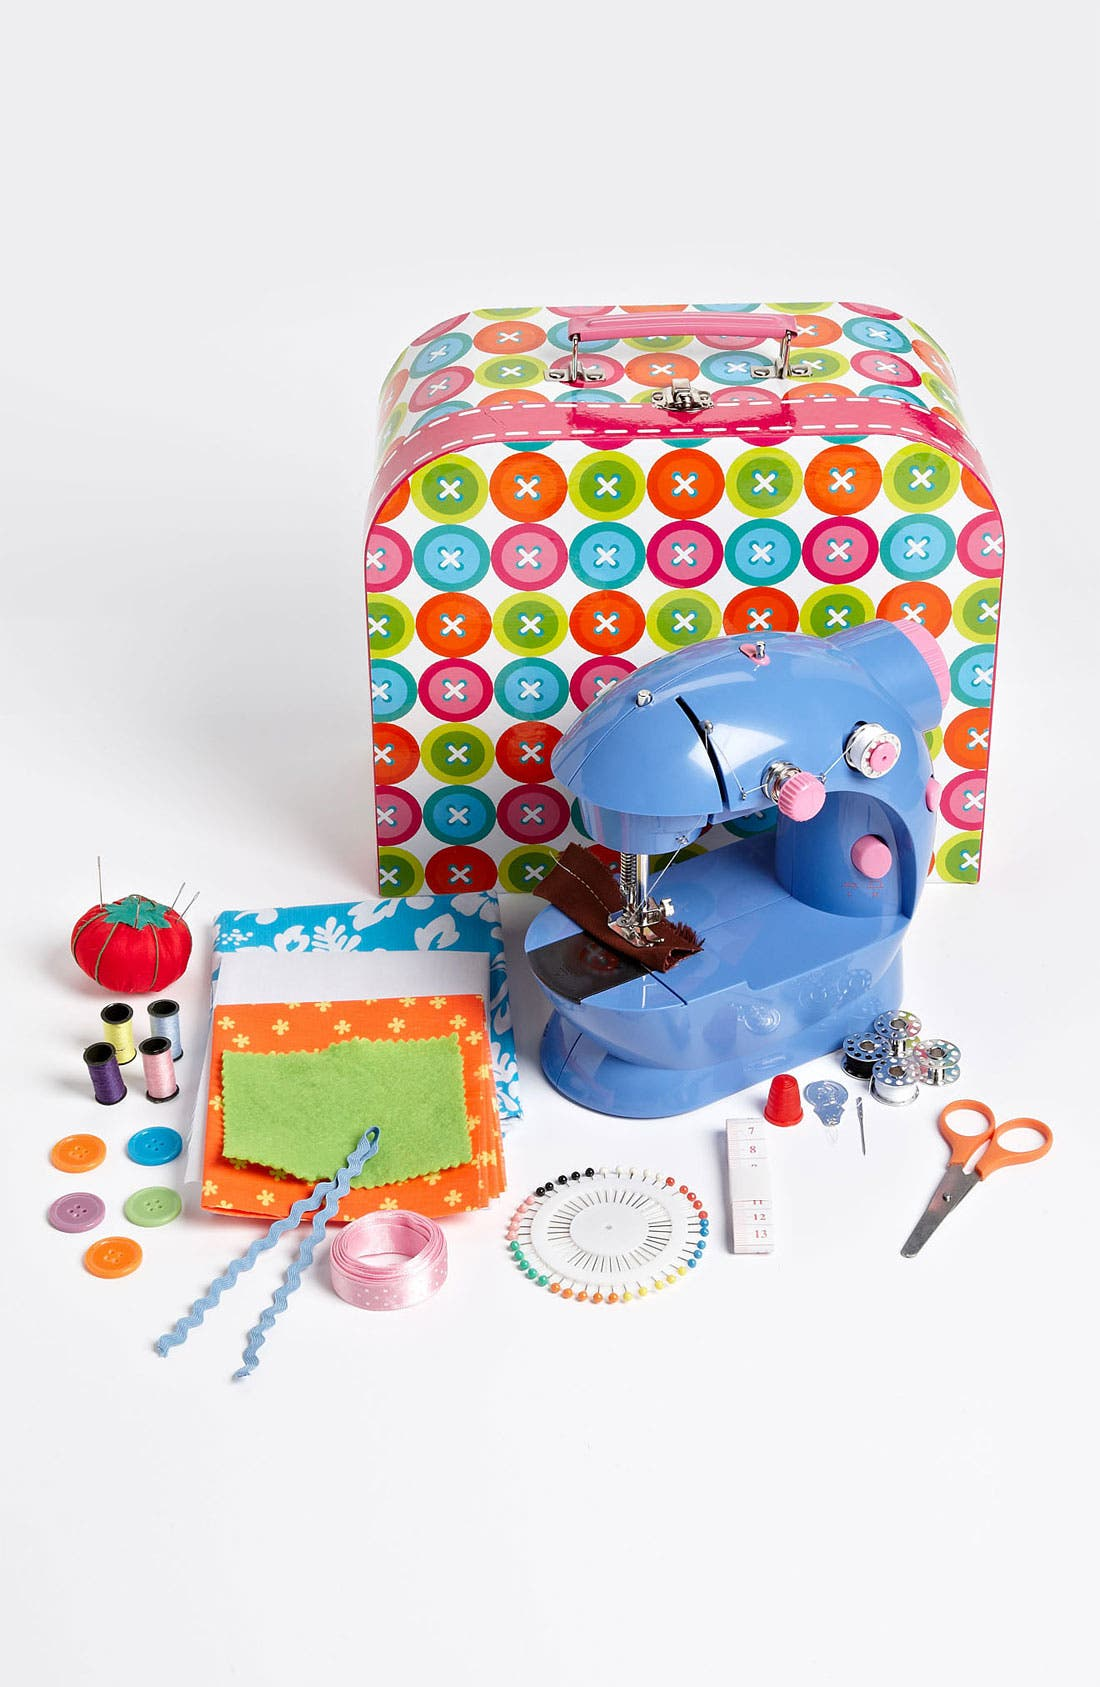 Main Image - Alex® Toys 'Sew Fun' Sewing Machine & Kit